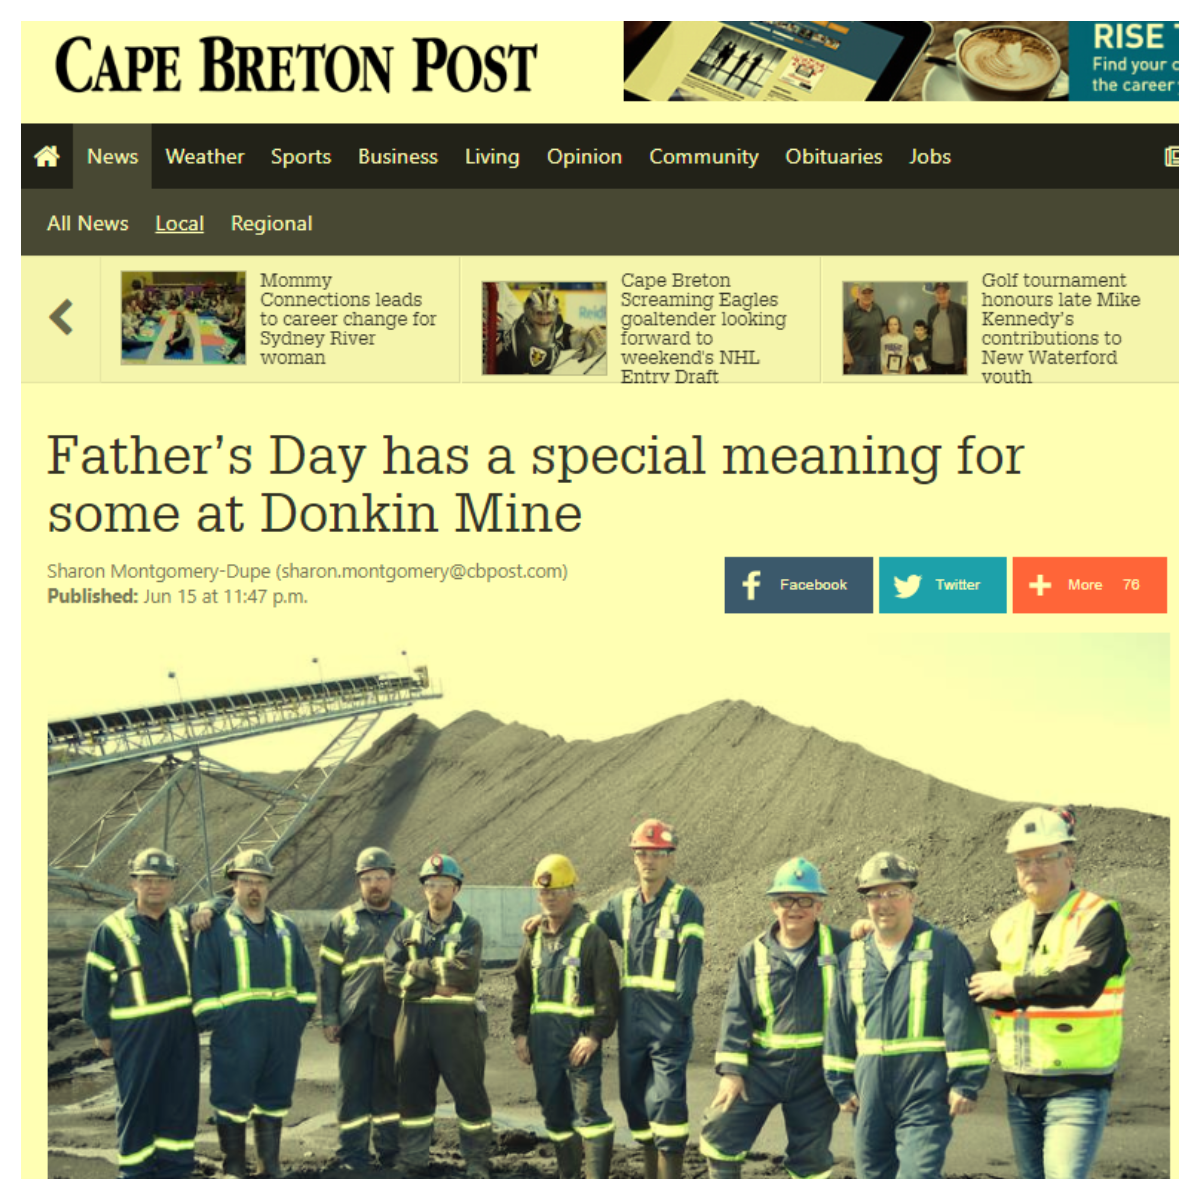 A Father's Day Gift to the Donkin Mine - The Cape Breton